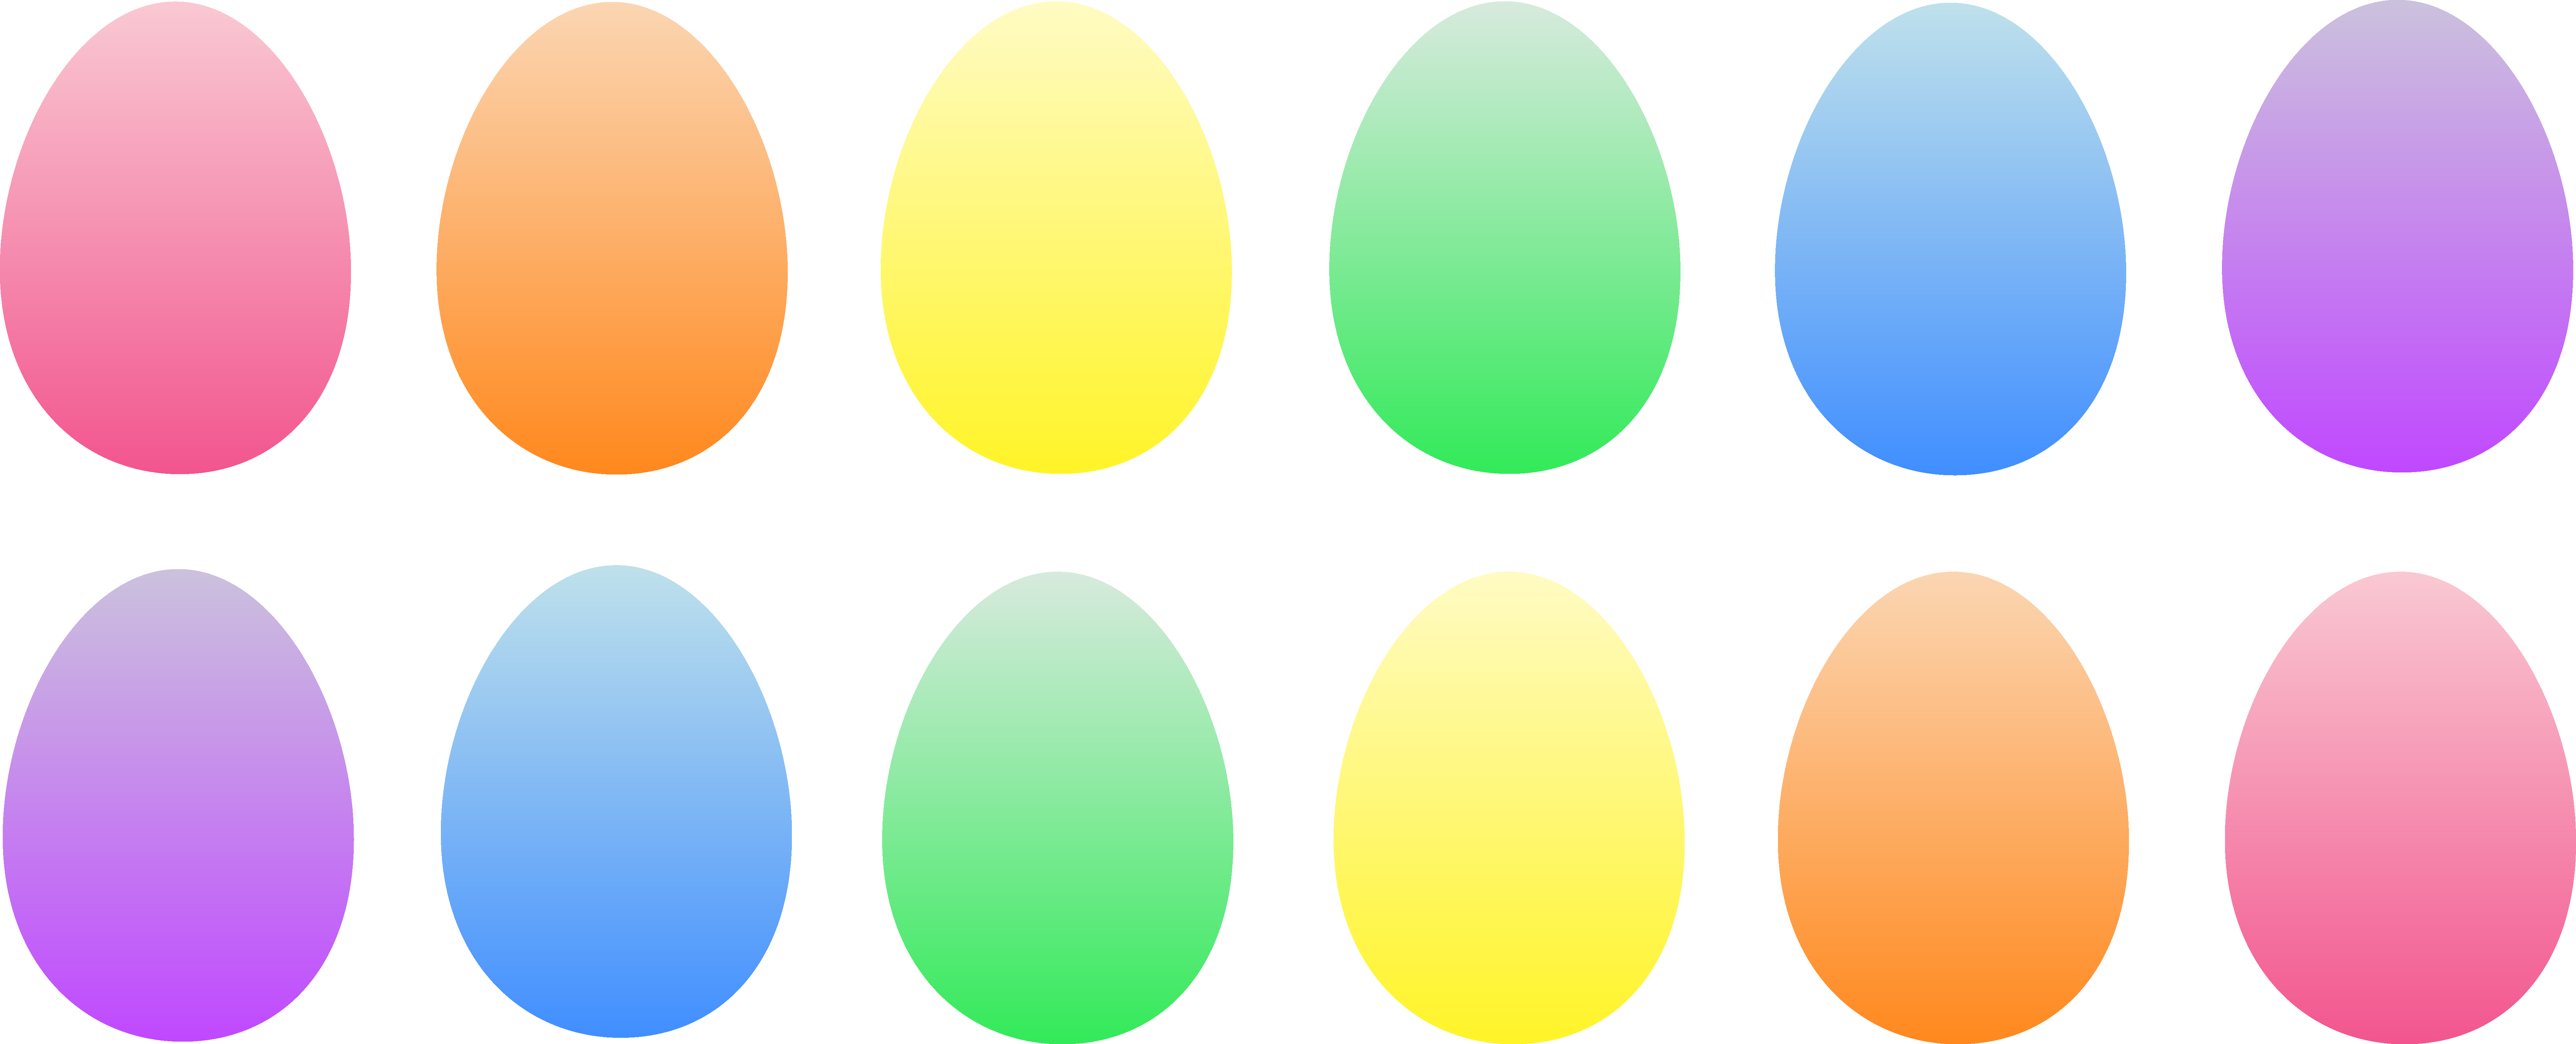 Plastic eggs png. A revolutionary new early